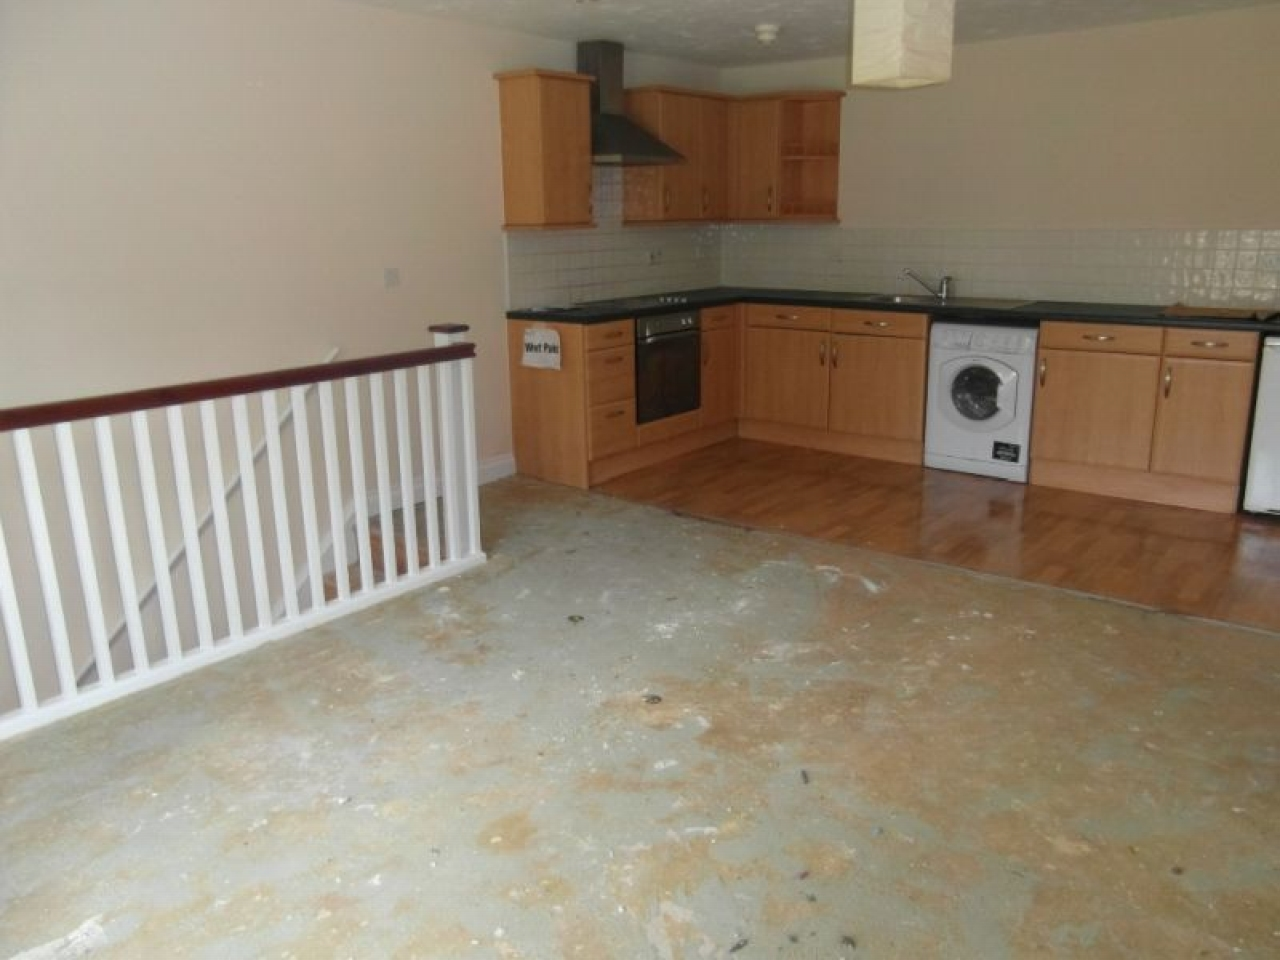 2 Bed Apartment Flat/apartment For Sale - Open Plan Kitchen Diner